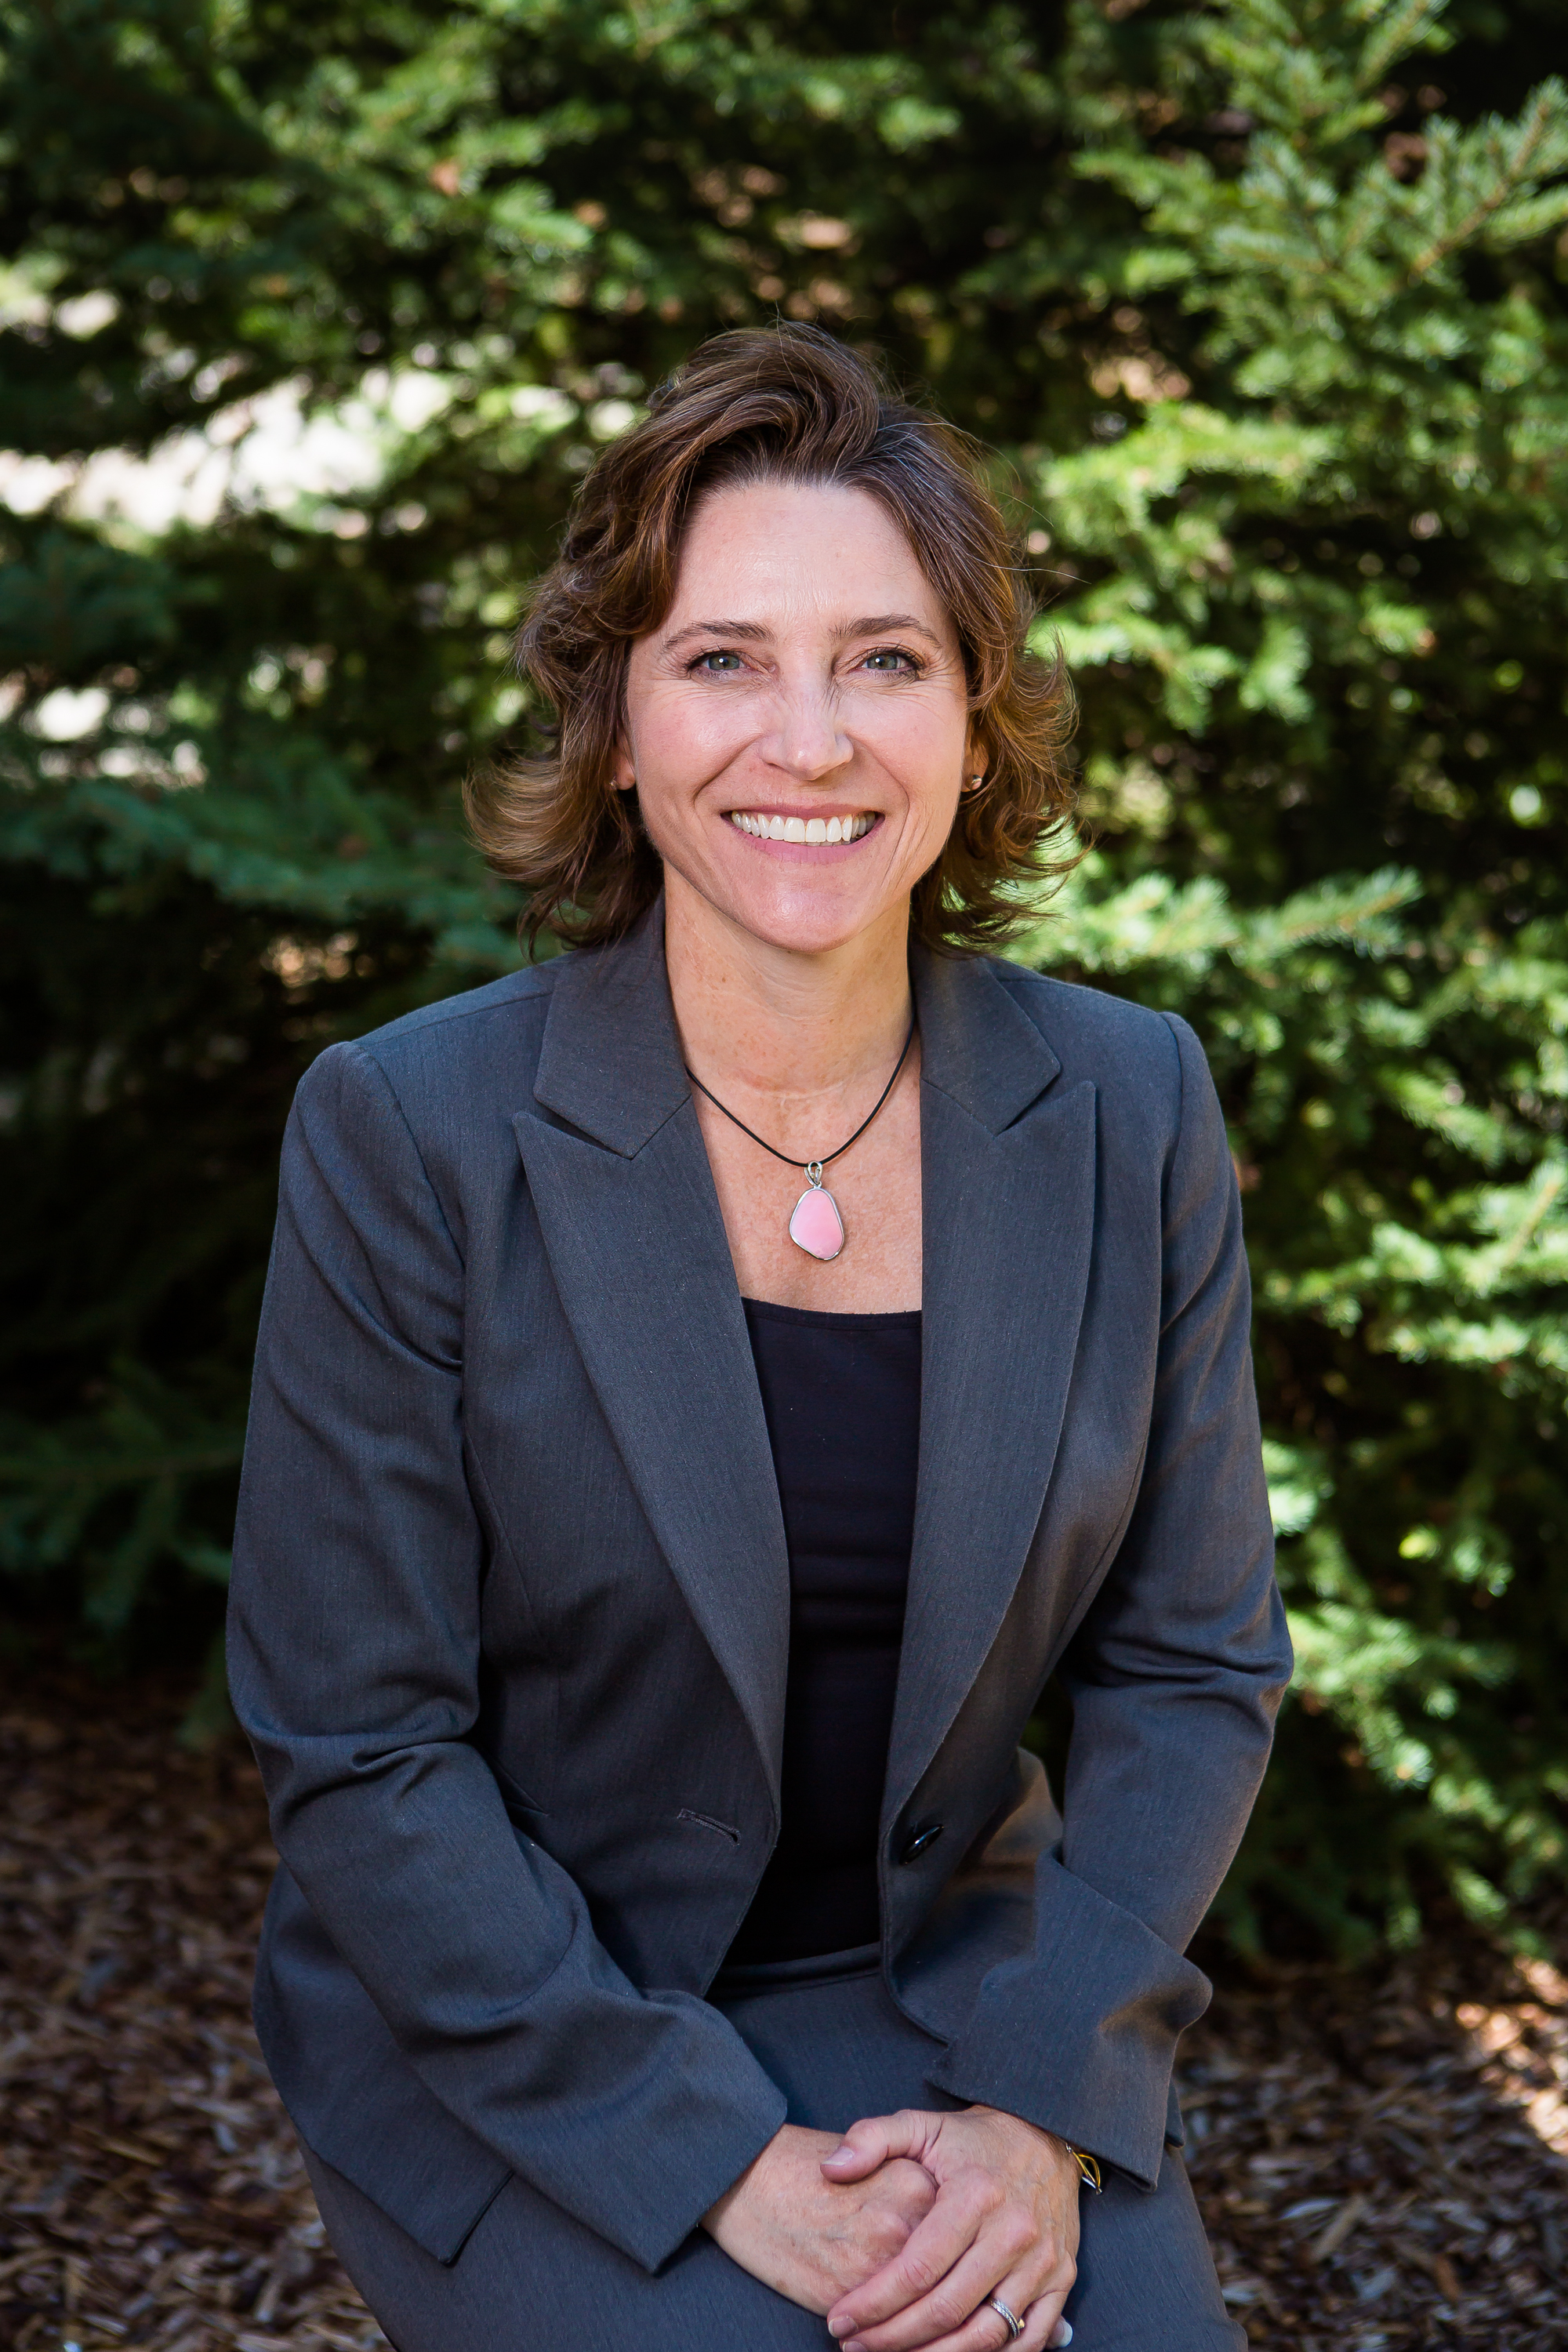 Laura Lewis Marchino - Region 9 helps SW Colorado keep up with Front Range